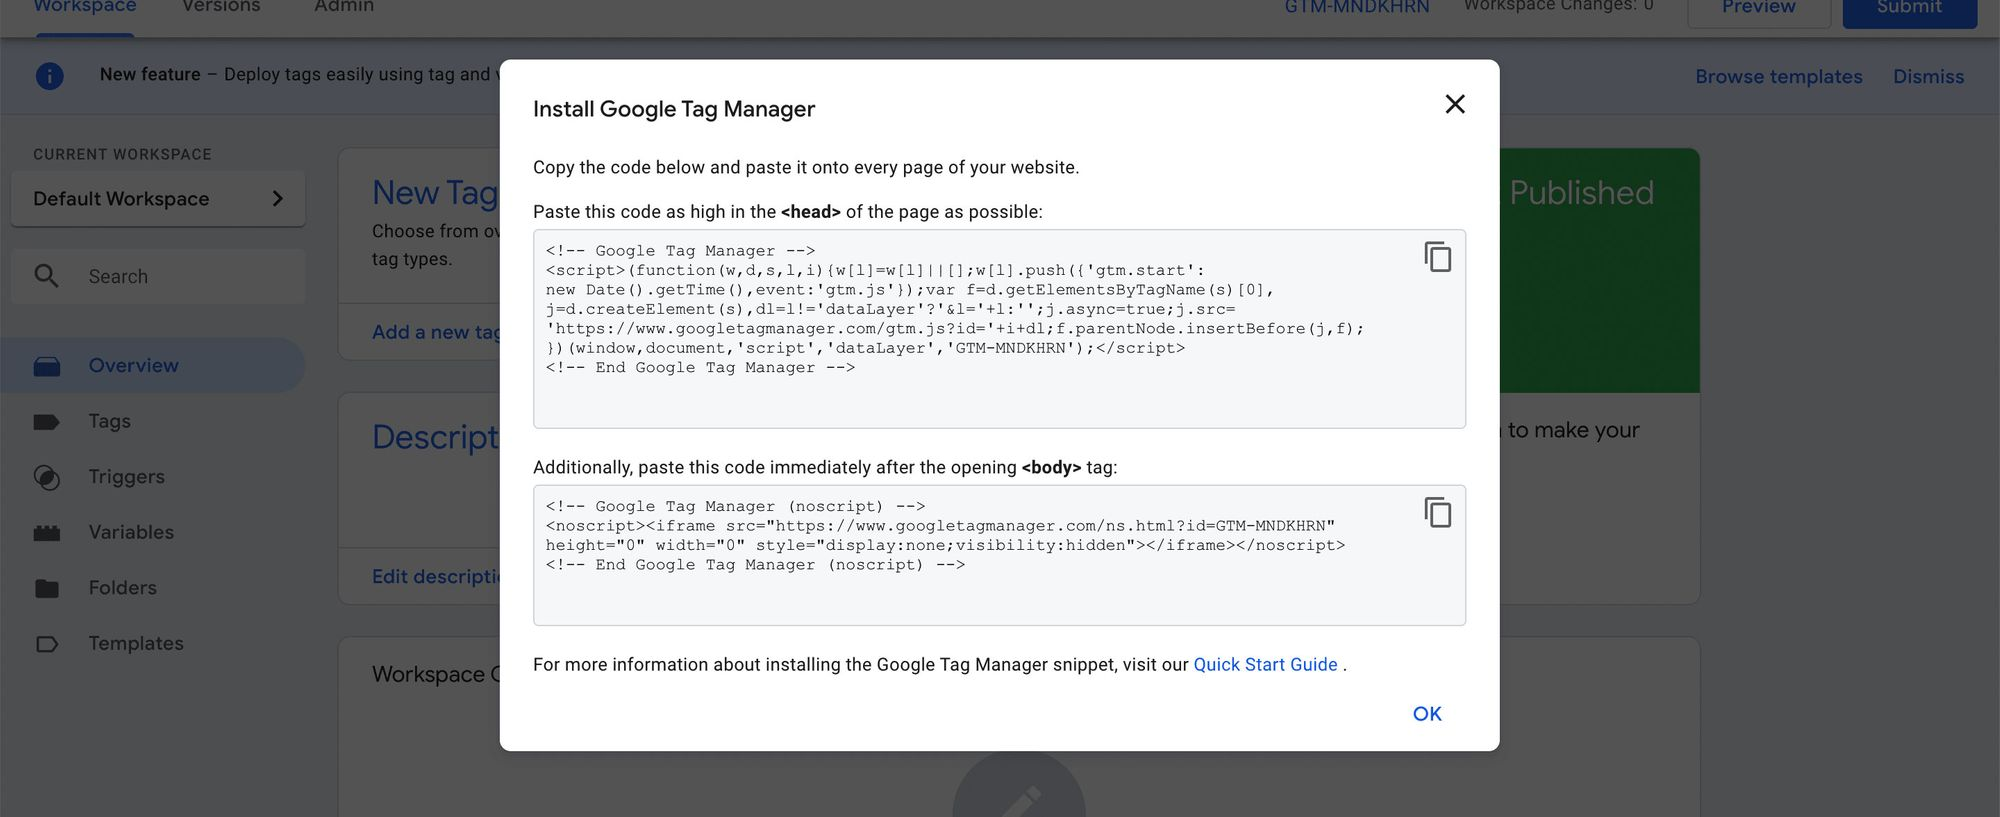 google-tag-manager-install-snippet.jpg